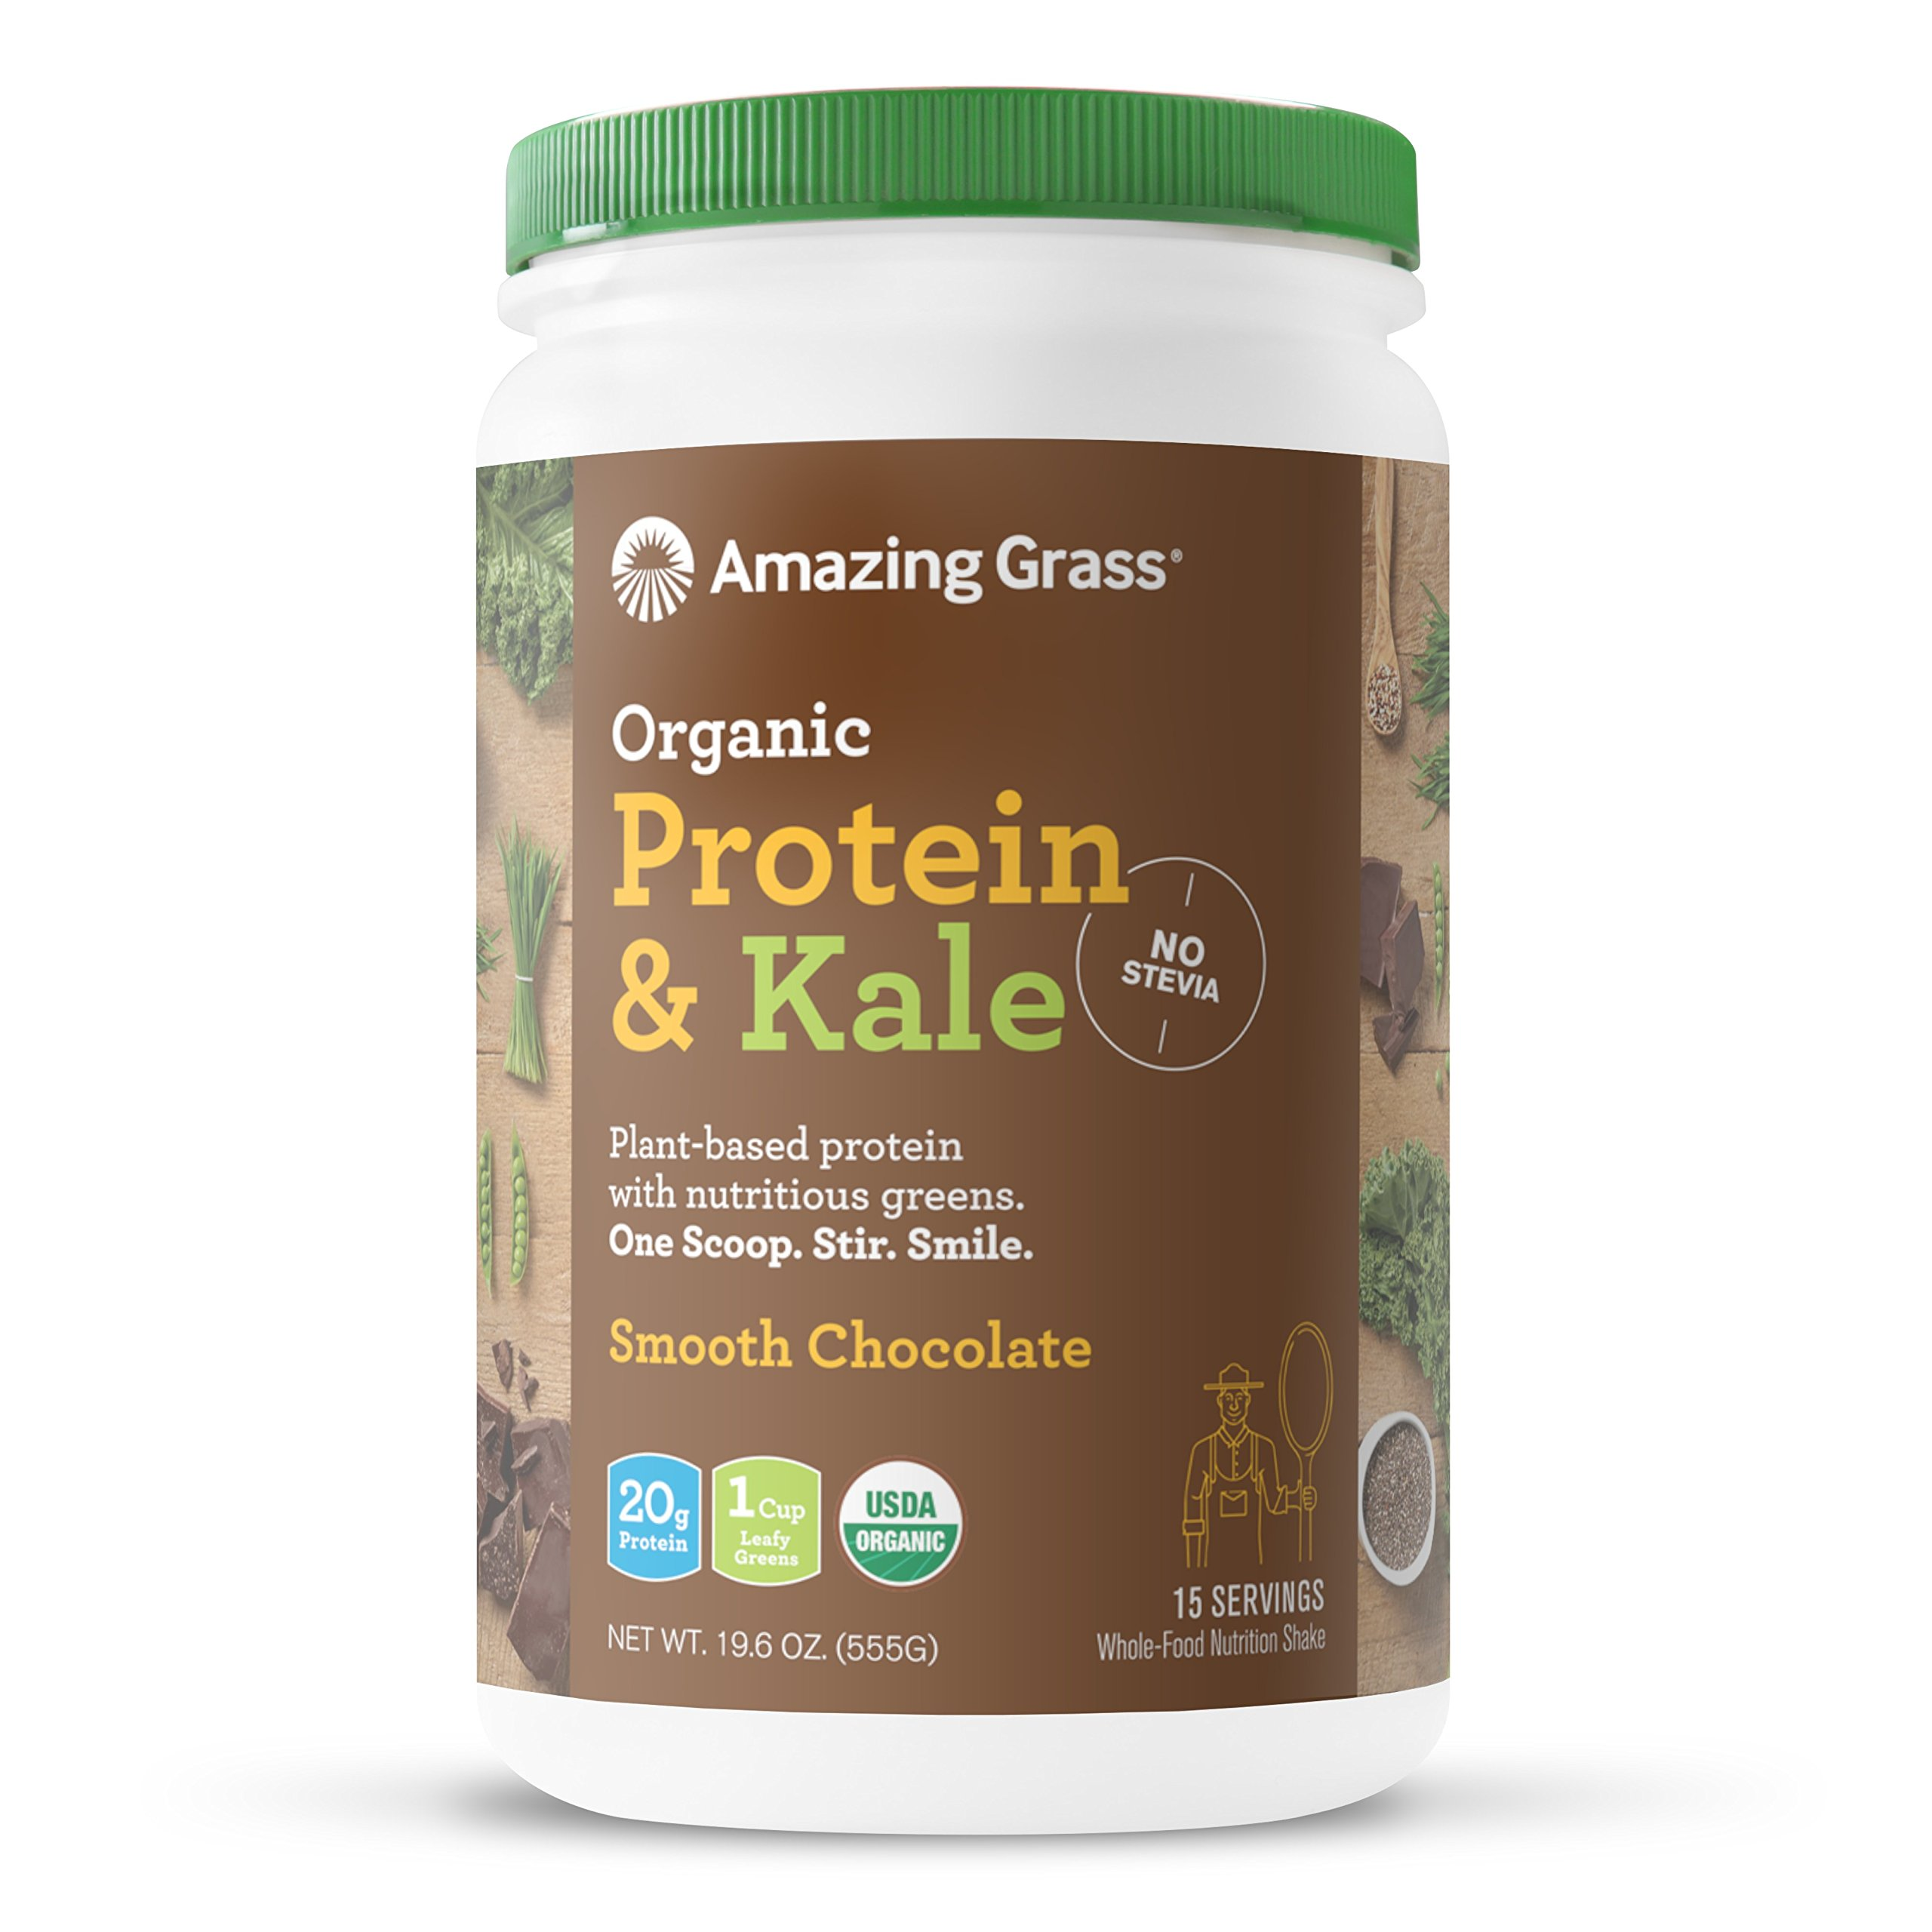 Amazing Grass Organic Vegan Protein & Kale Powder: 20g of Plant Based Protein per serve plus 1 cup of Greens, Chocolate Flavor, 15 Servings by Amazing Grass